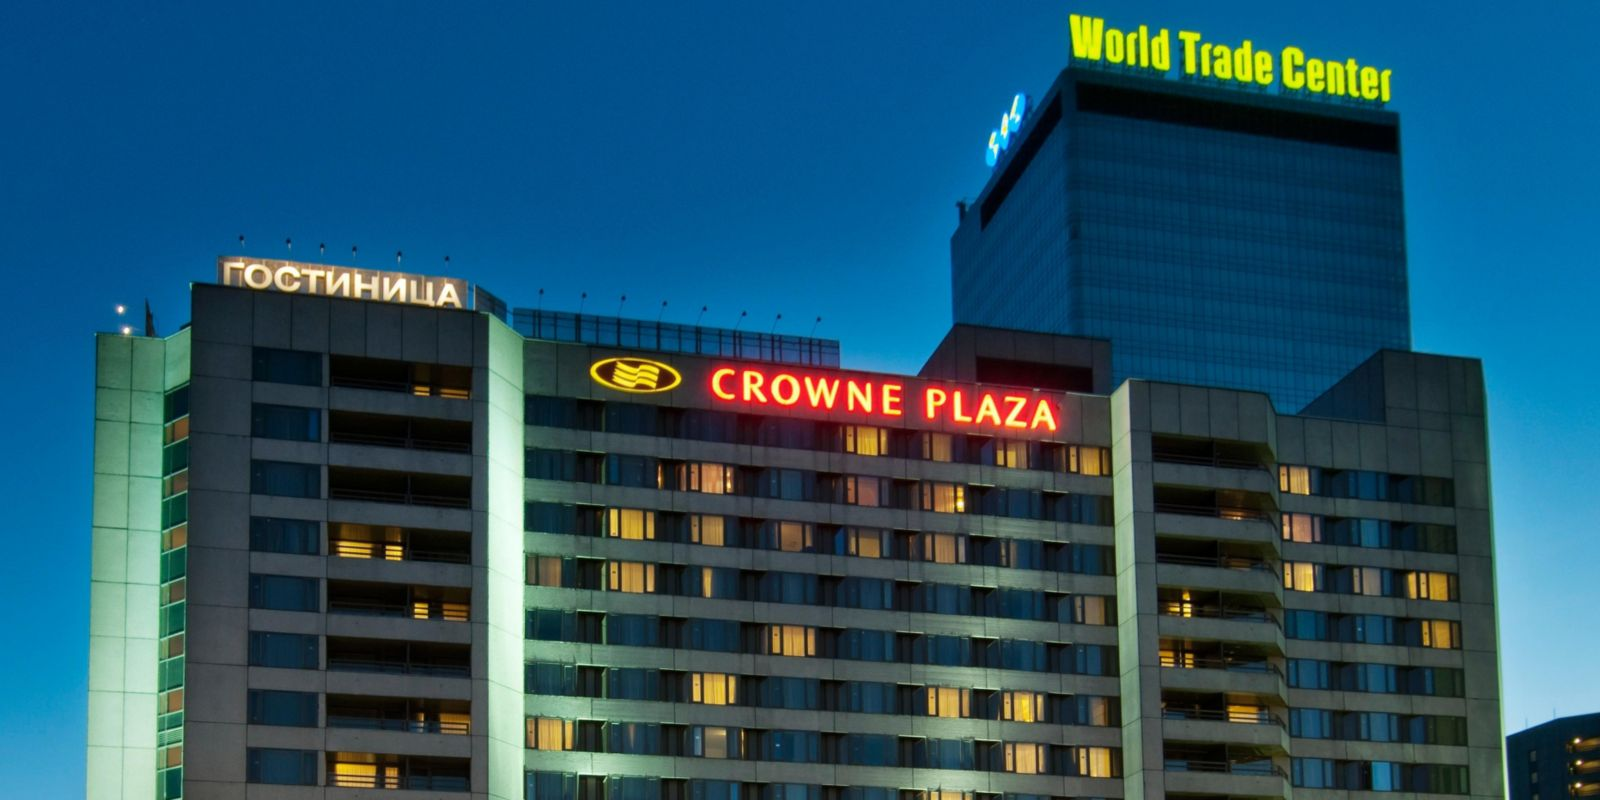 crown plaza moscow world trade